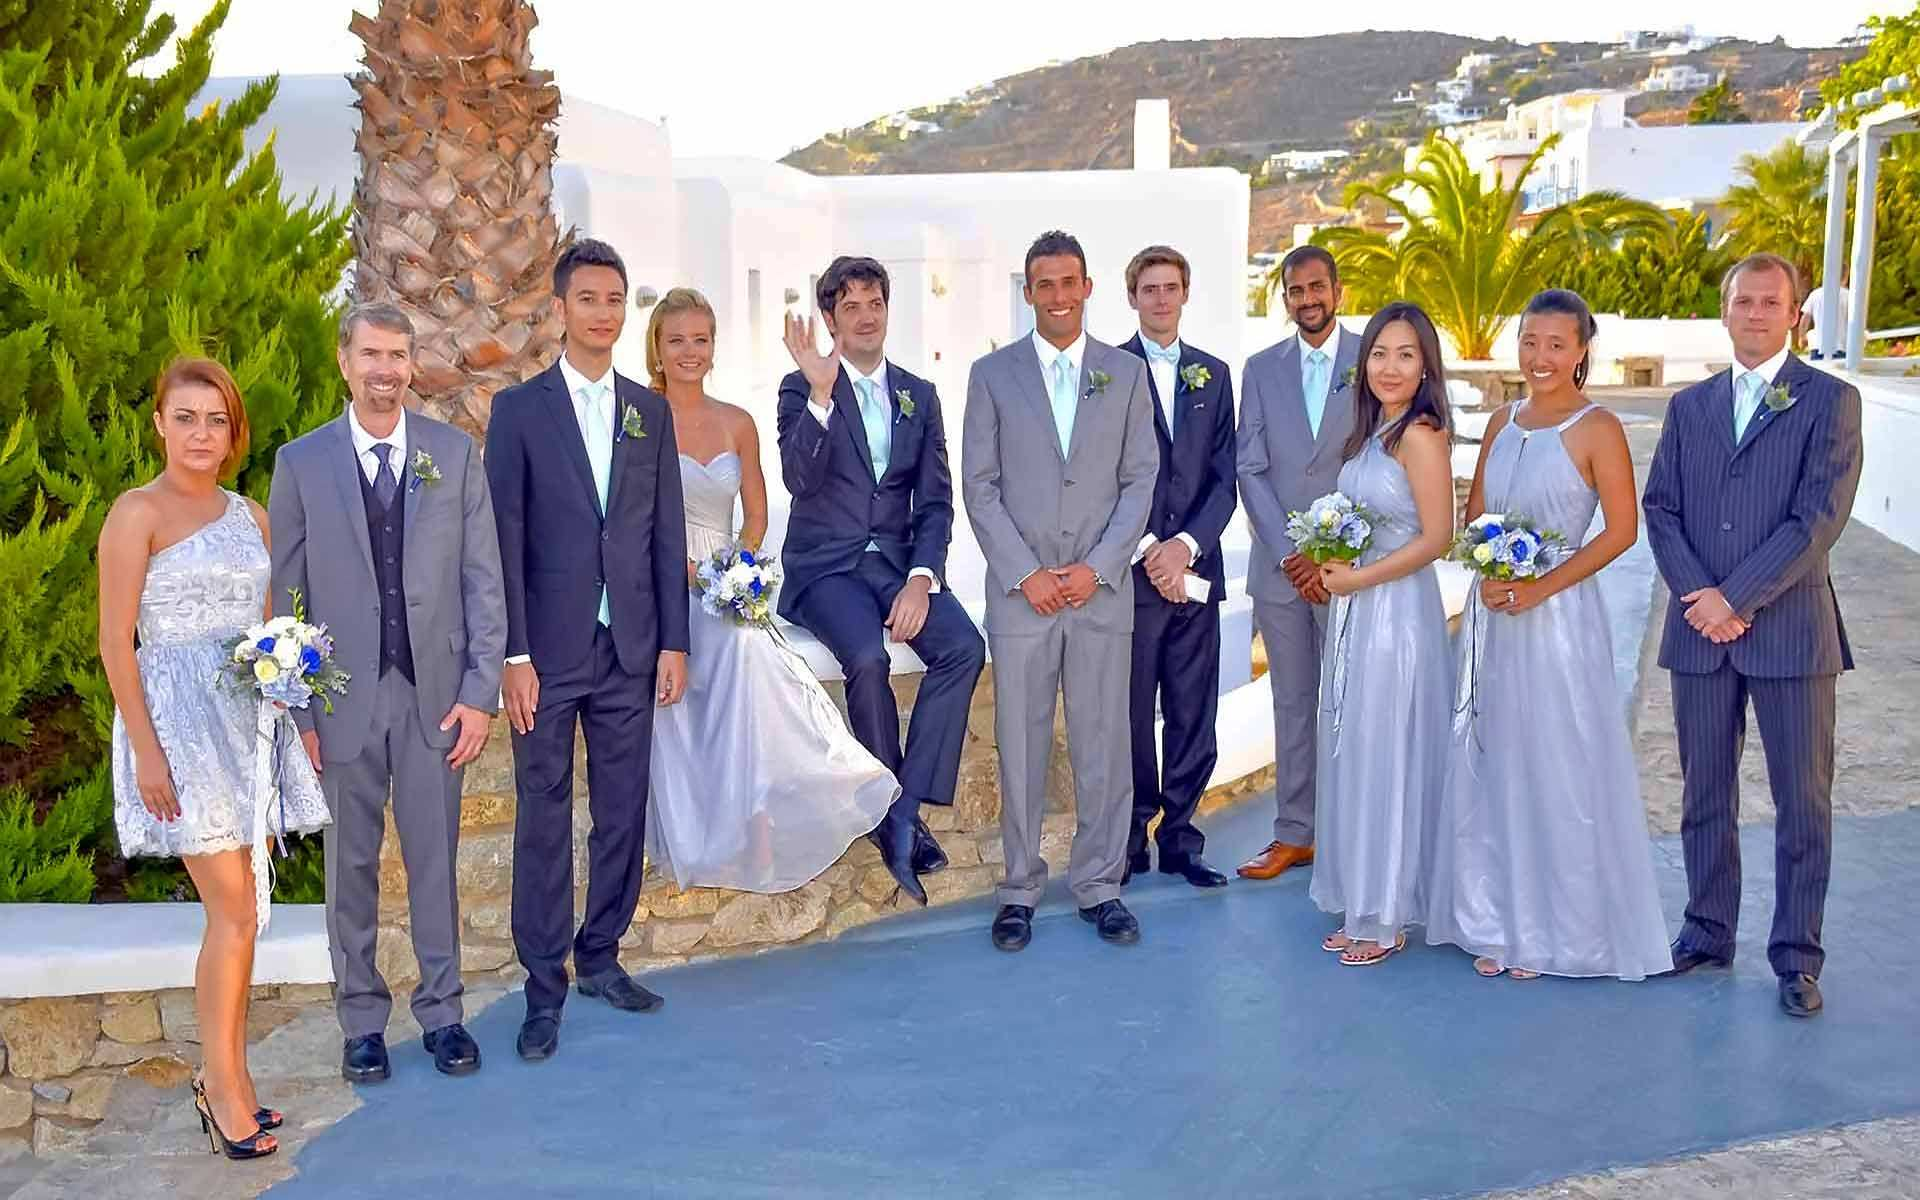 Bridesmaids-Groomsmen-Are-Waiting-For-The-Bride-To-Walk-Down-The-Aisle-In-Mykonos-Wedding